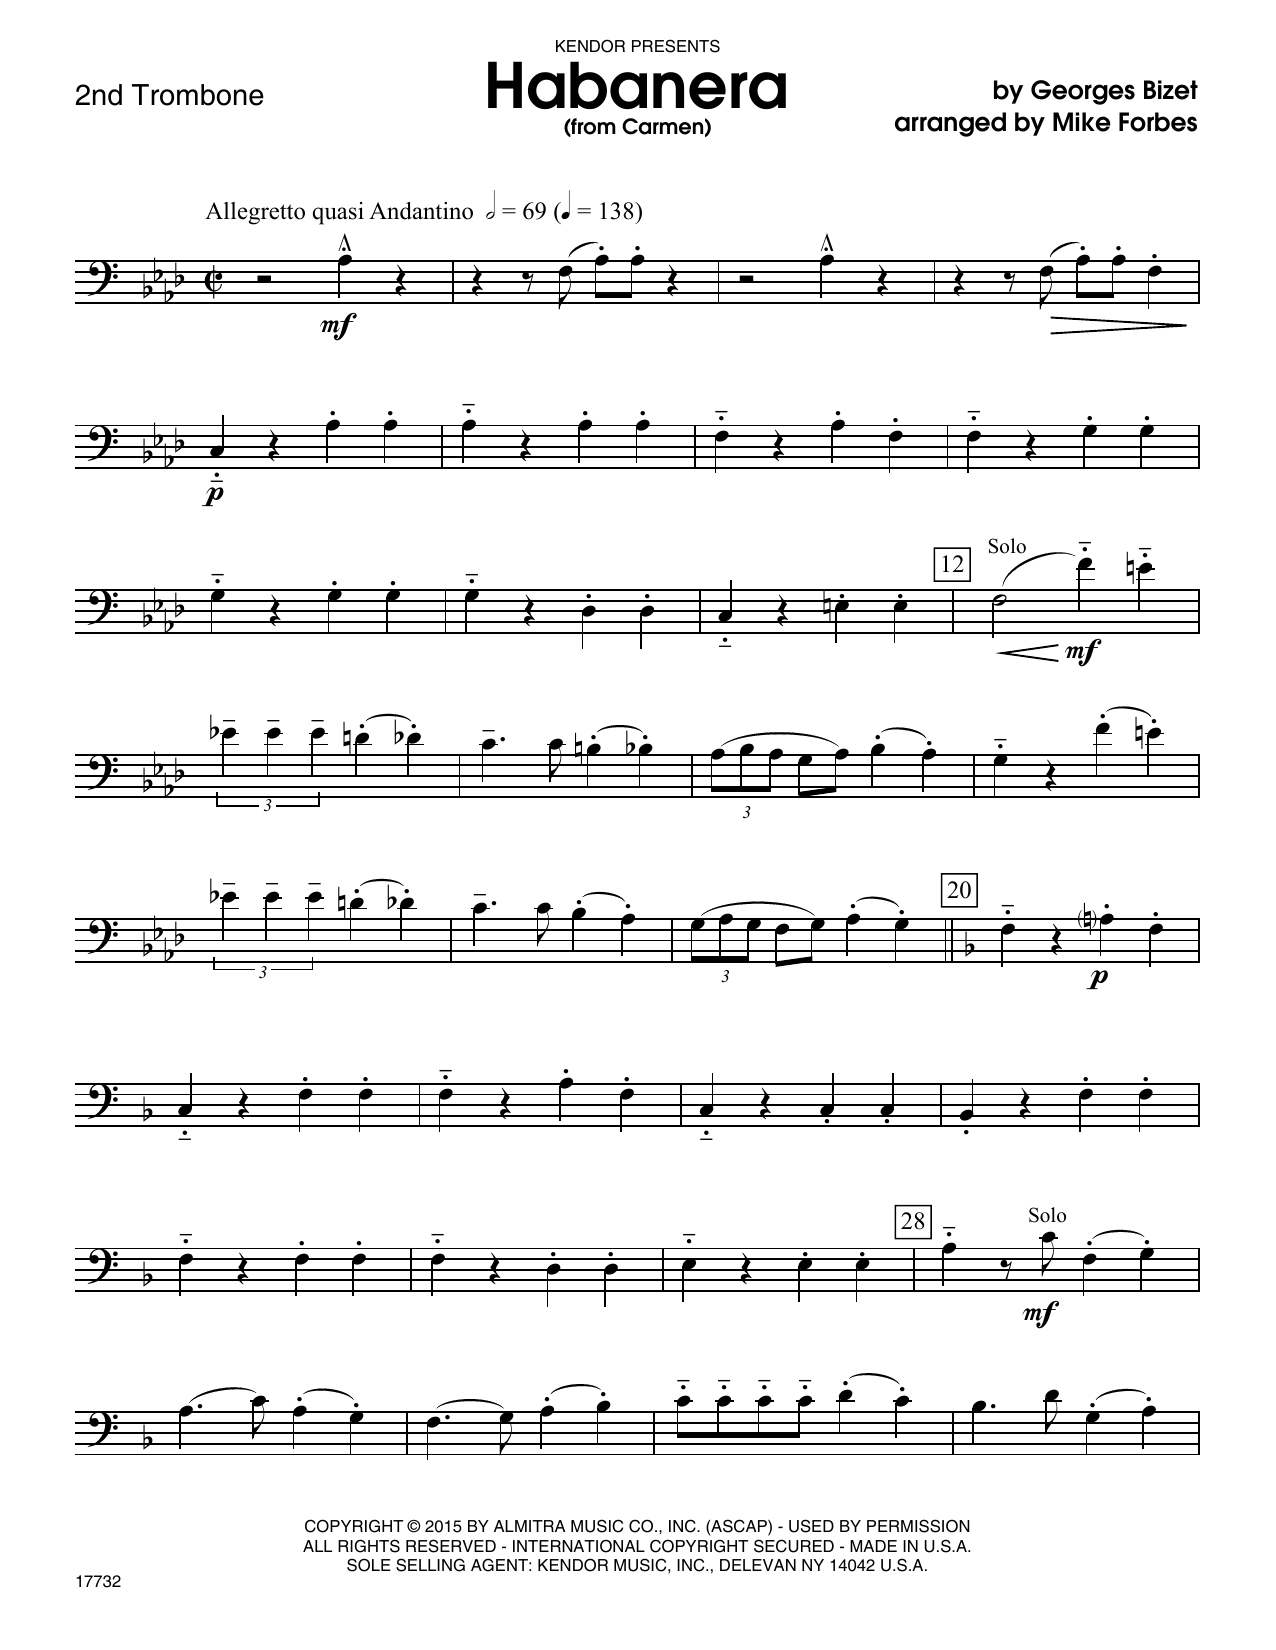 Habanera (from Carmen) - 2nd Trombone Sheet Music